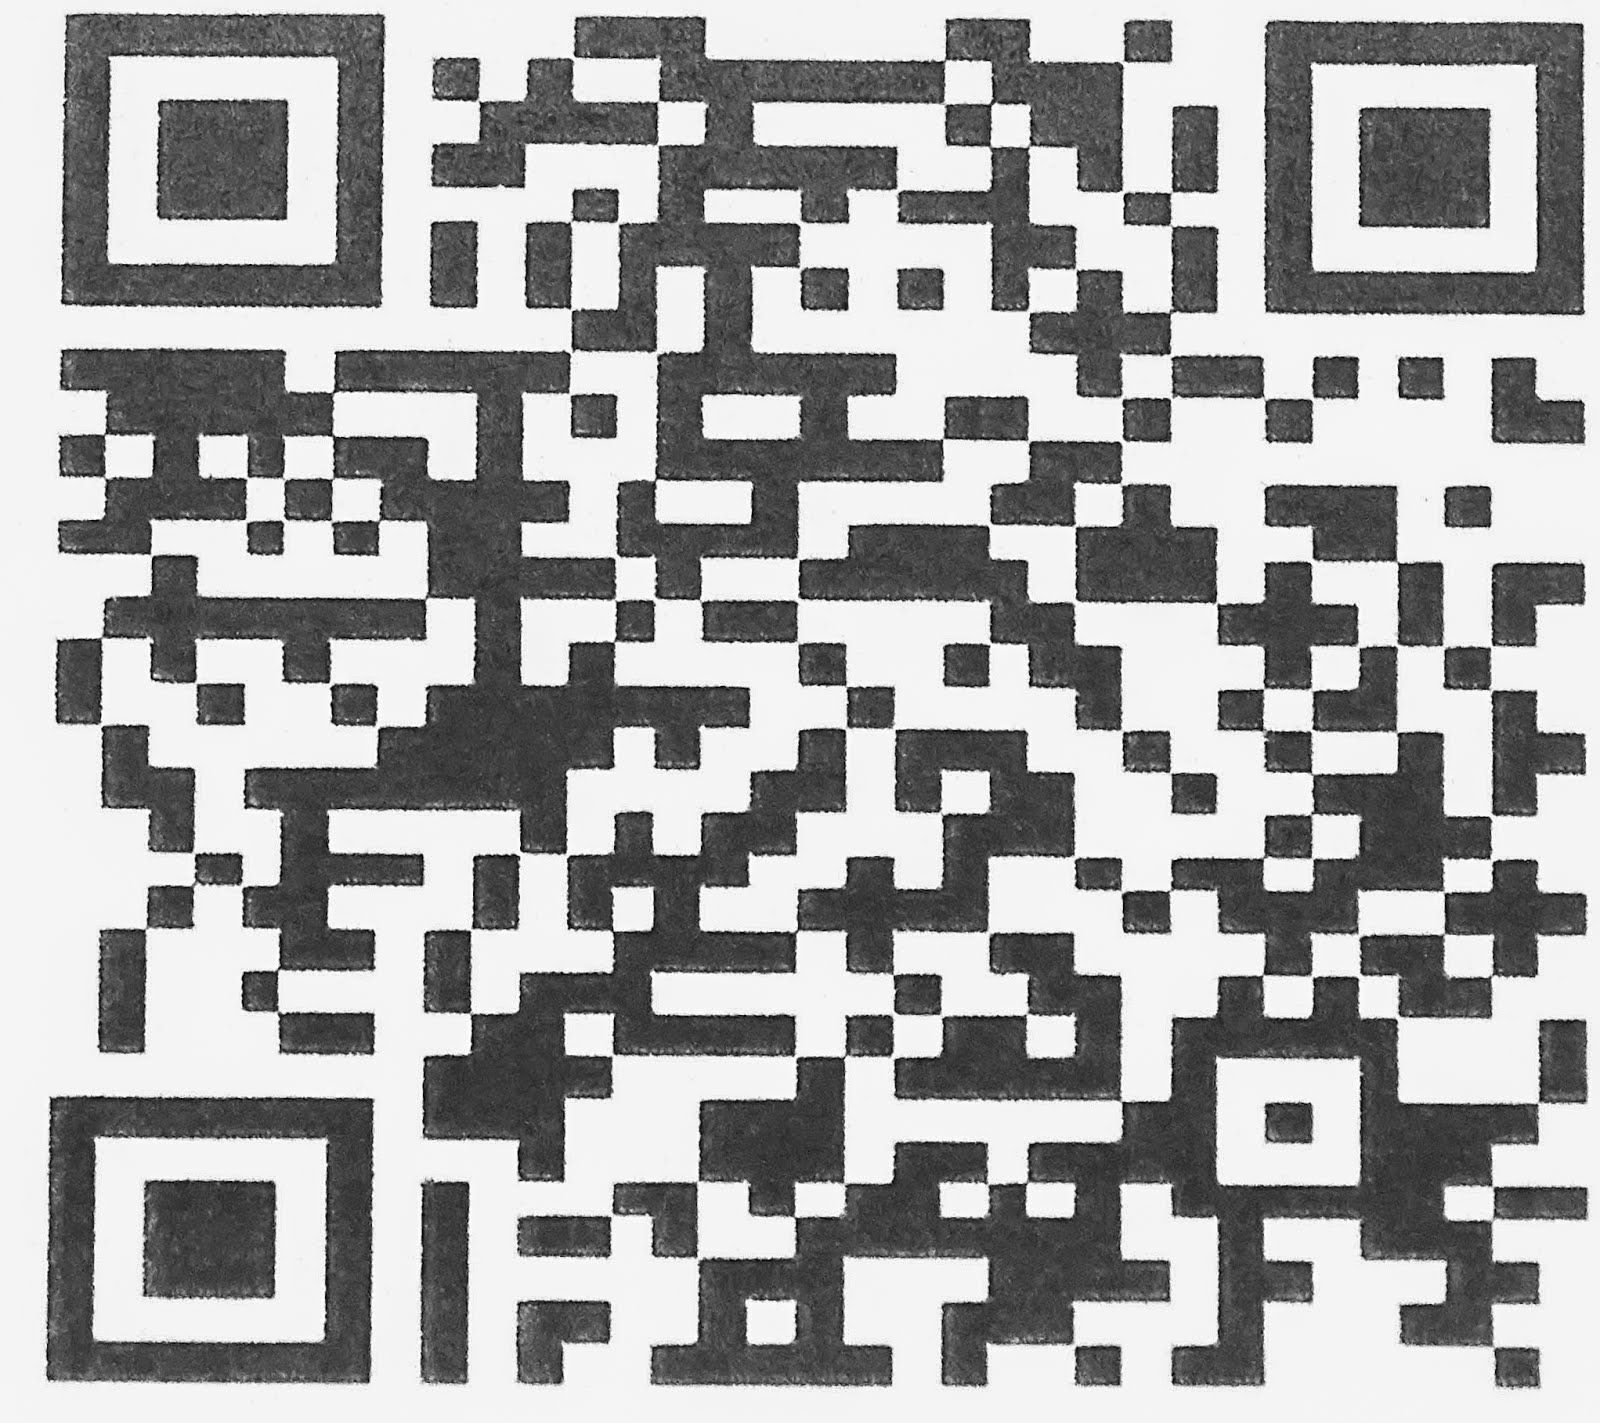 BYU Family History Library QR Code